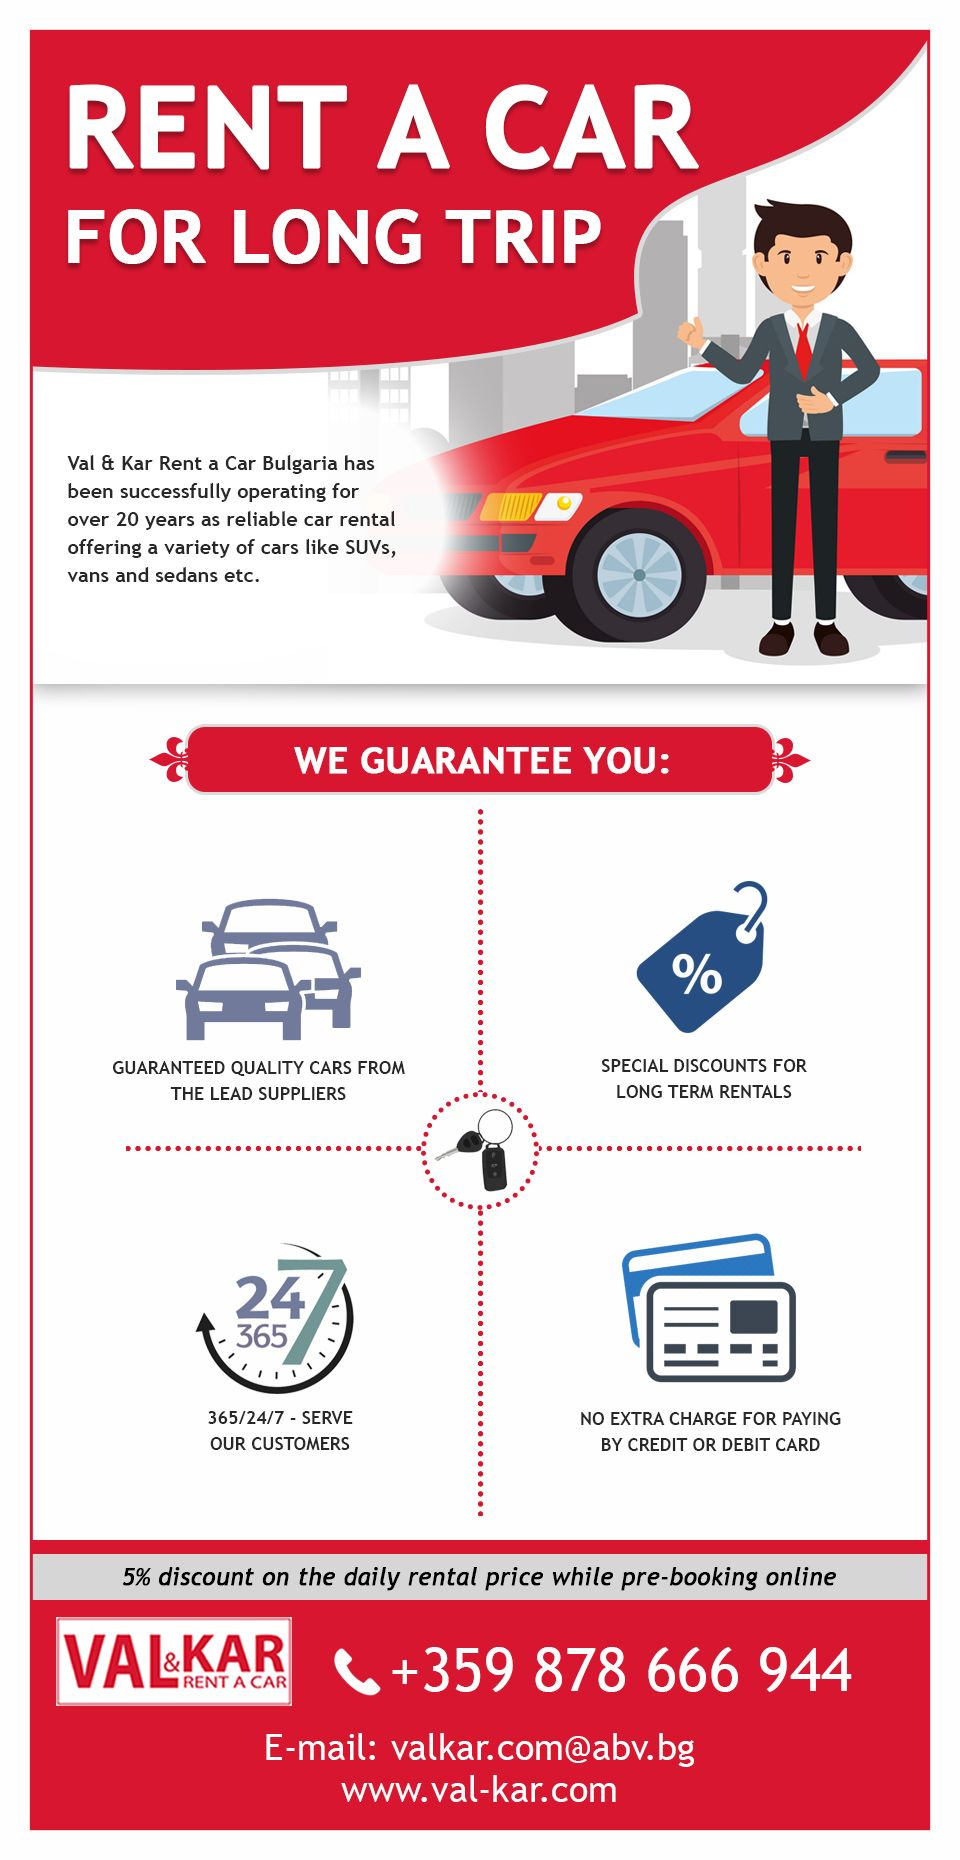 Val Kar Rentacar Bulgaria Has Been Successfully Operating For Over 20 Years As Reliable Car Rental Offer Car Rental Rent A Car Airport Car Rental